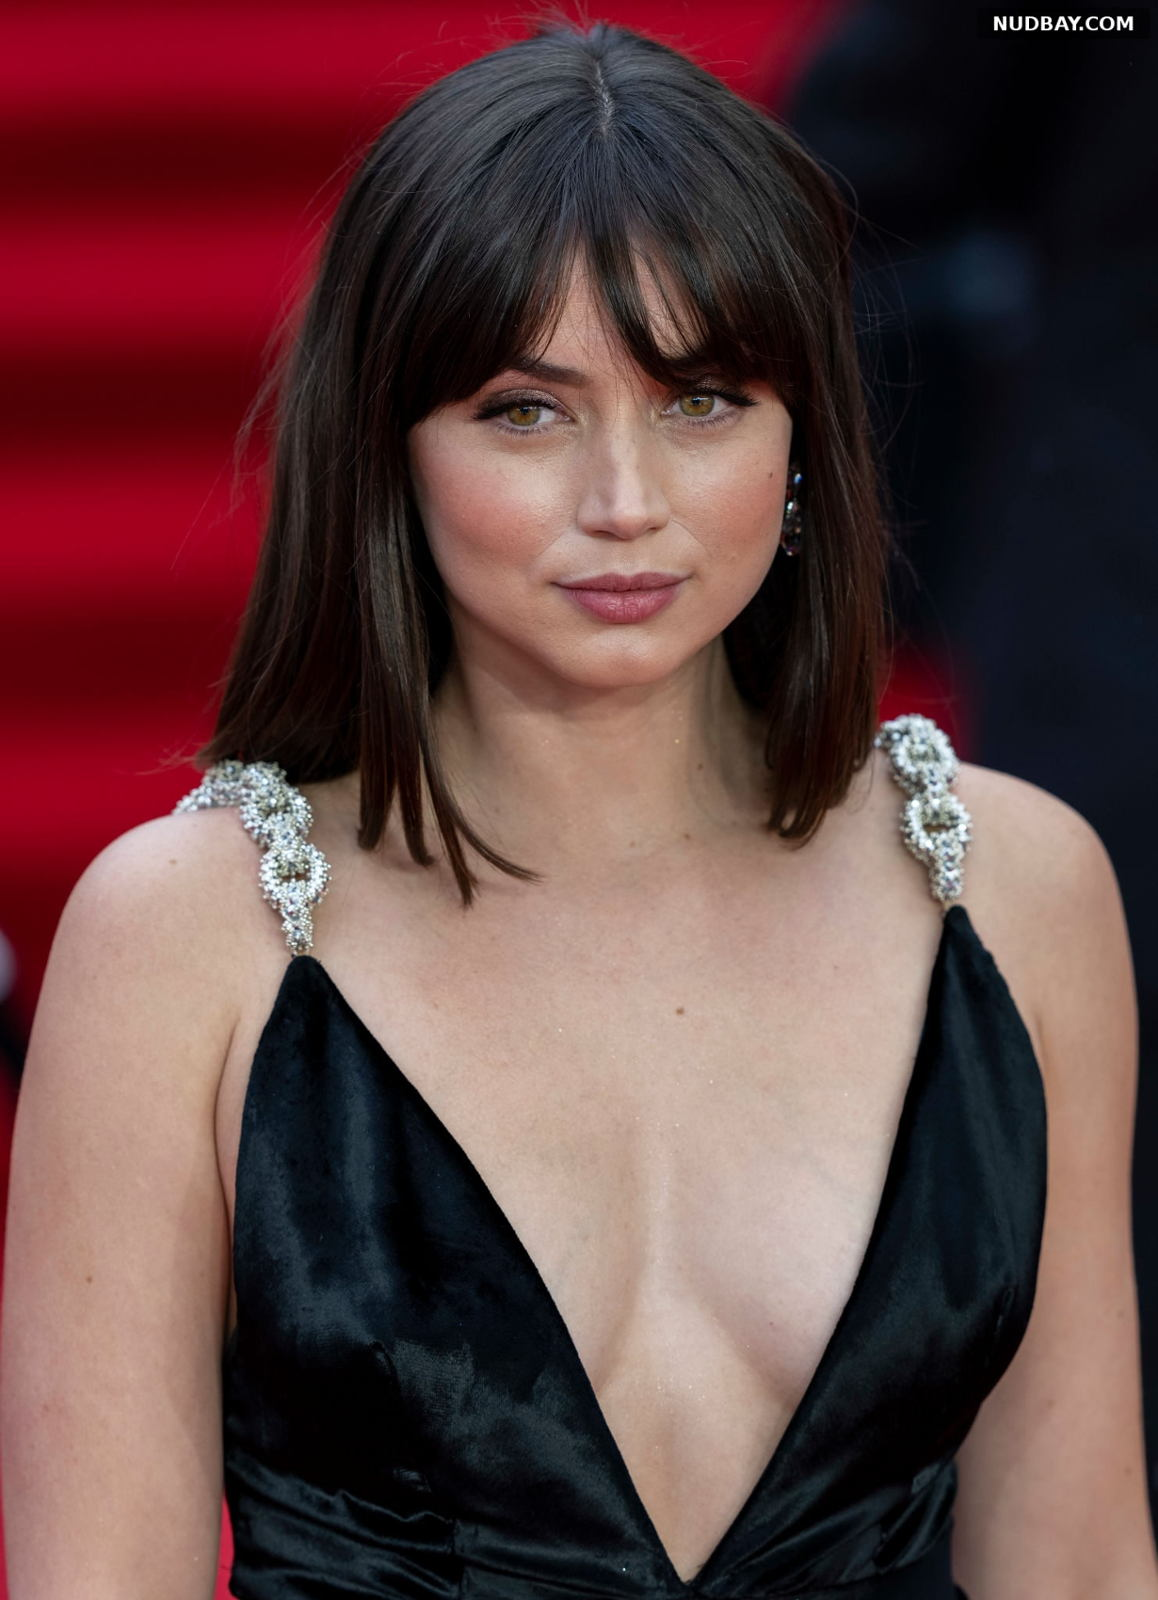 Ana de Armas Cleavage at the premiere of 'No Time To Die' in London September 28 2021